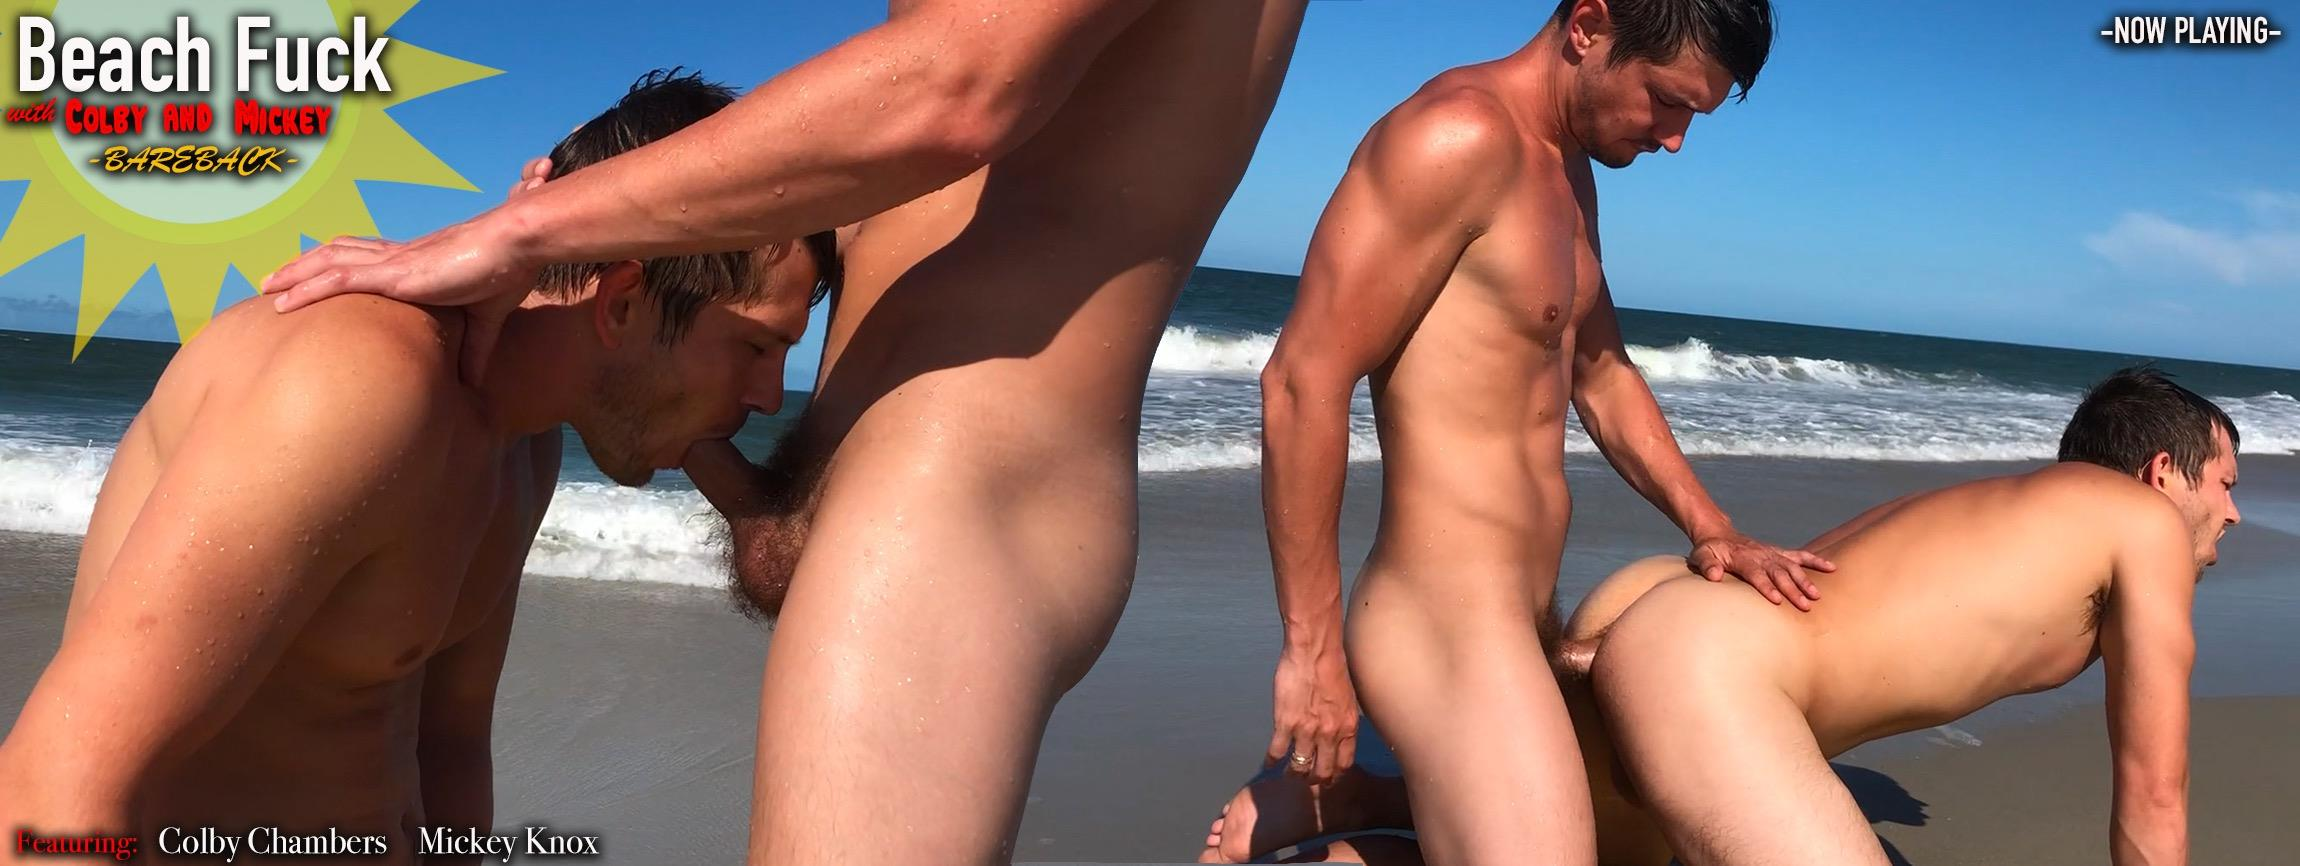 Beach Fuck with Colby and Mickey